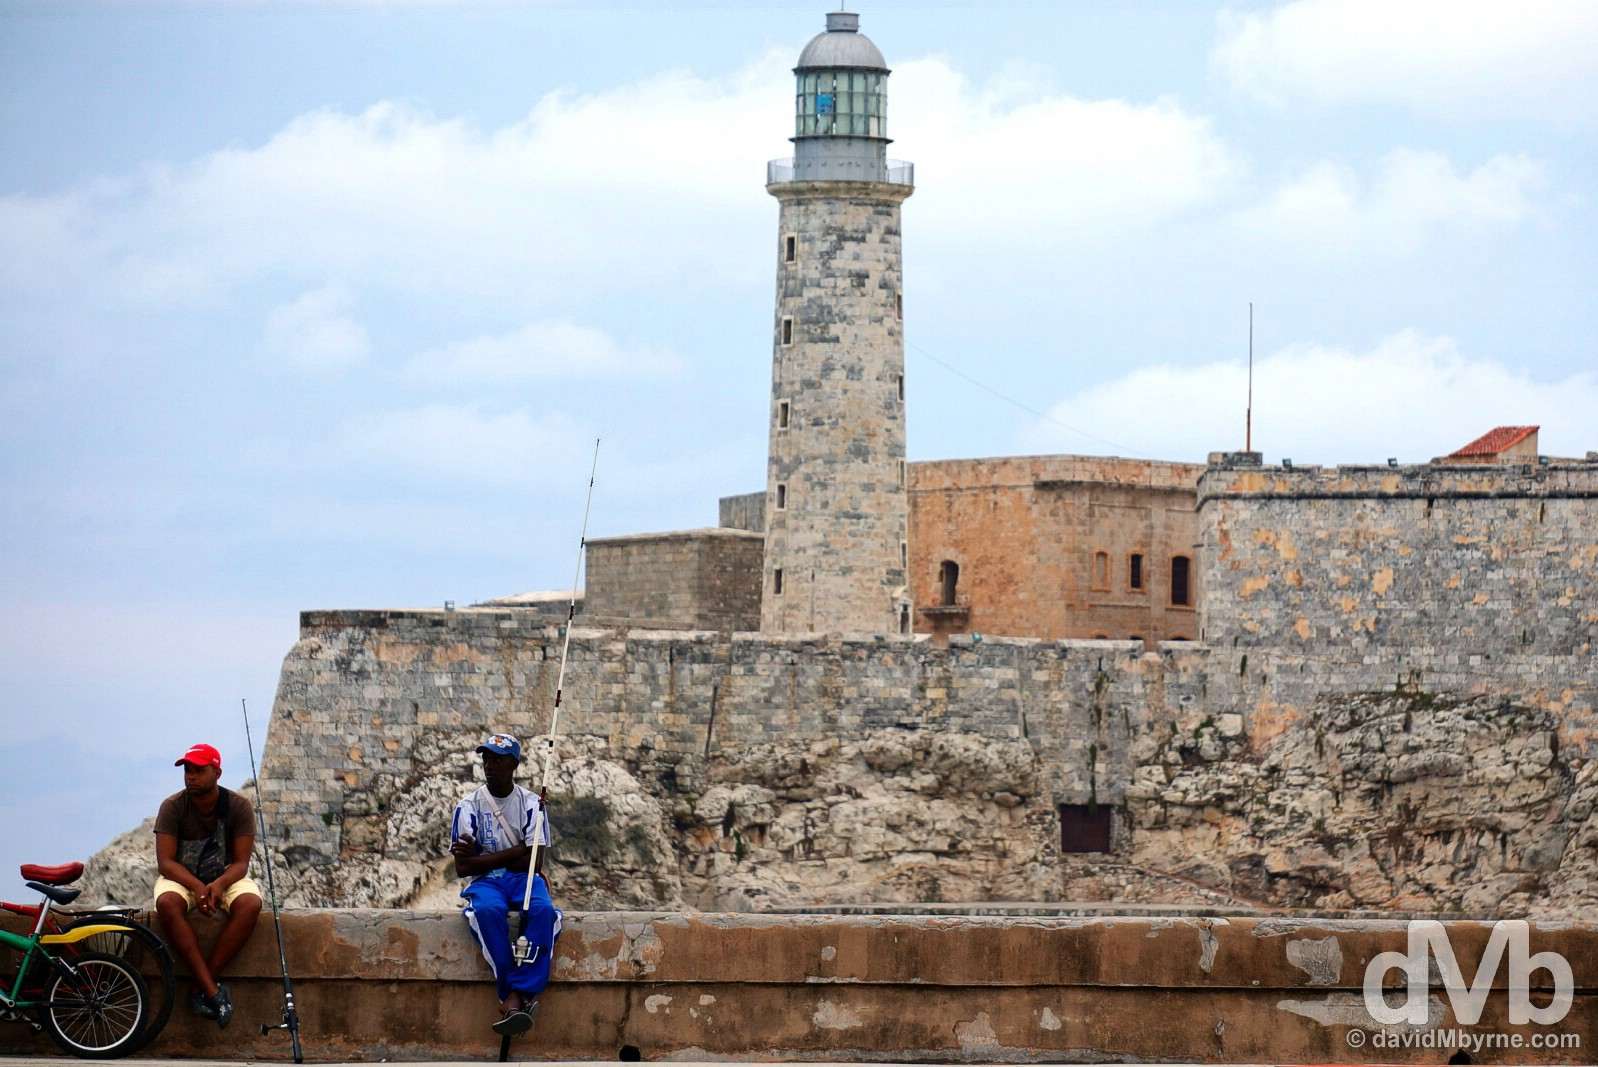 Sitting on the walls of the Malecon fronting Castillo de San Salvador de la Punta in Havana, Cuba. April 30, 2015.